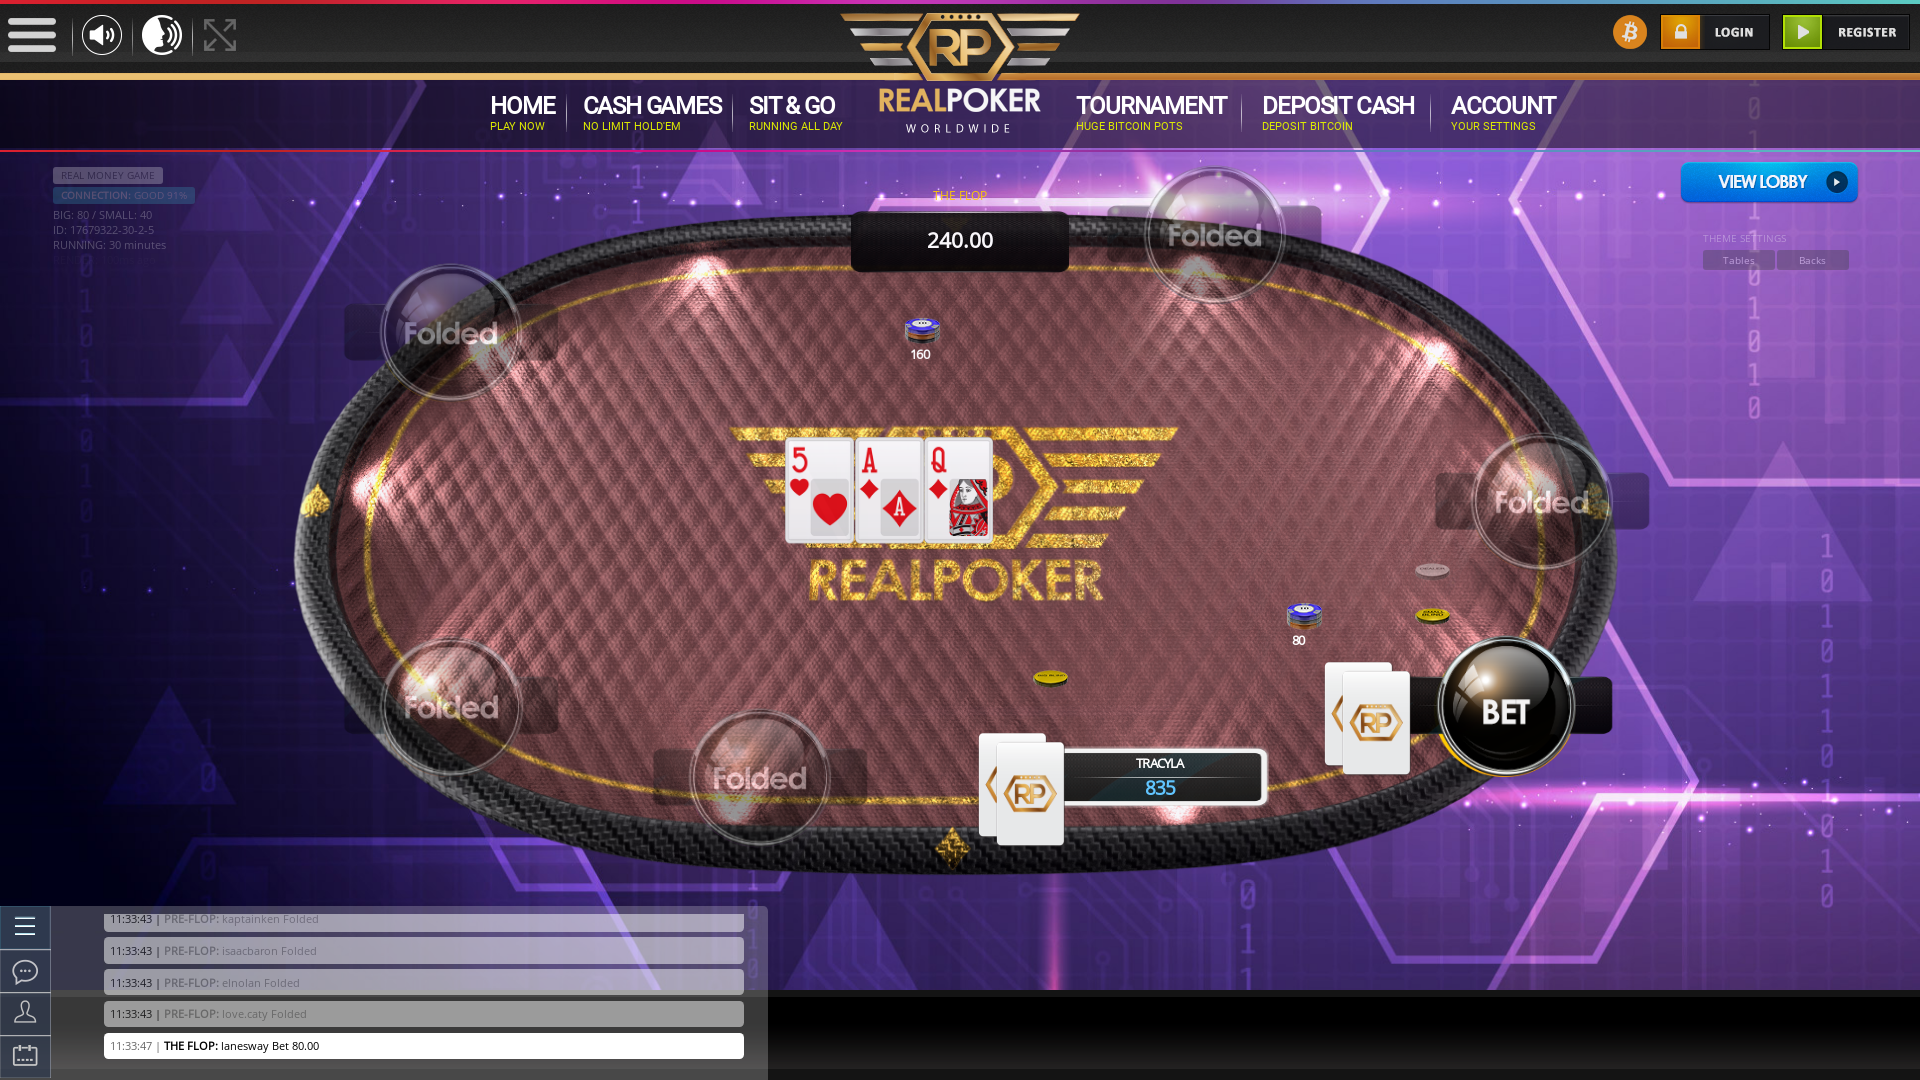 Czechia texas holdem poker table on a 10 player table in the 30th minute of the match